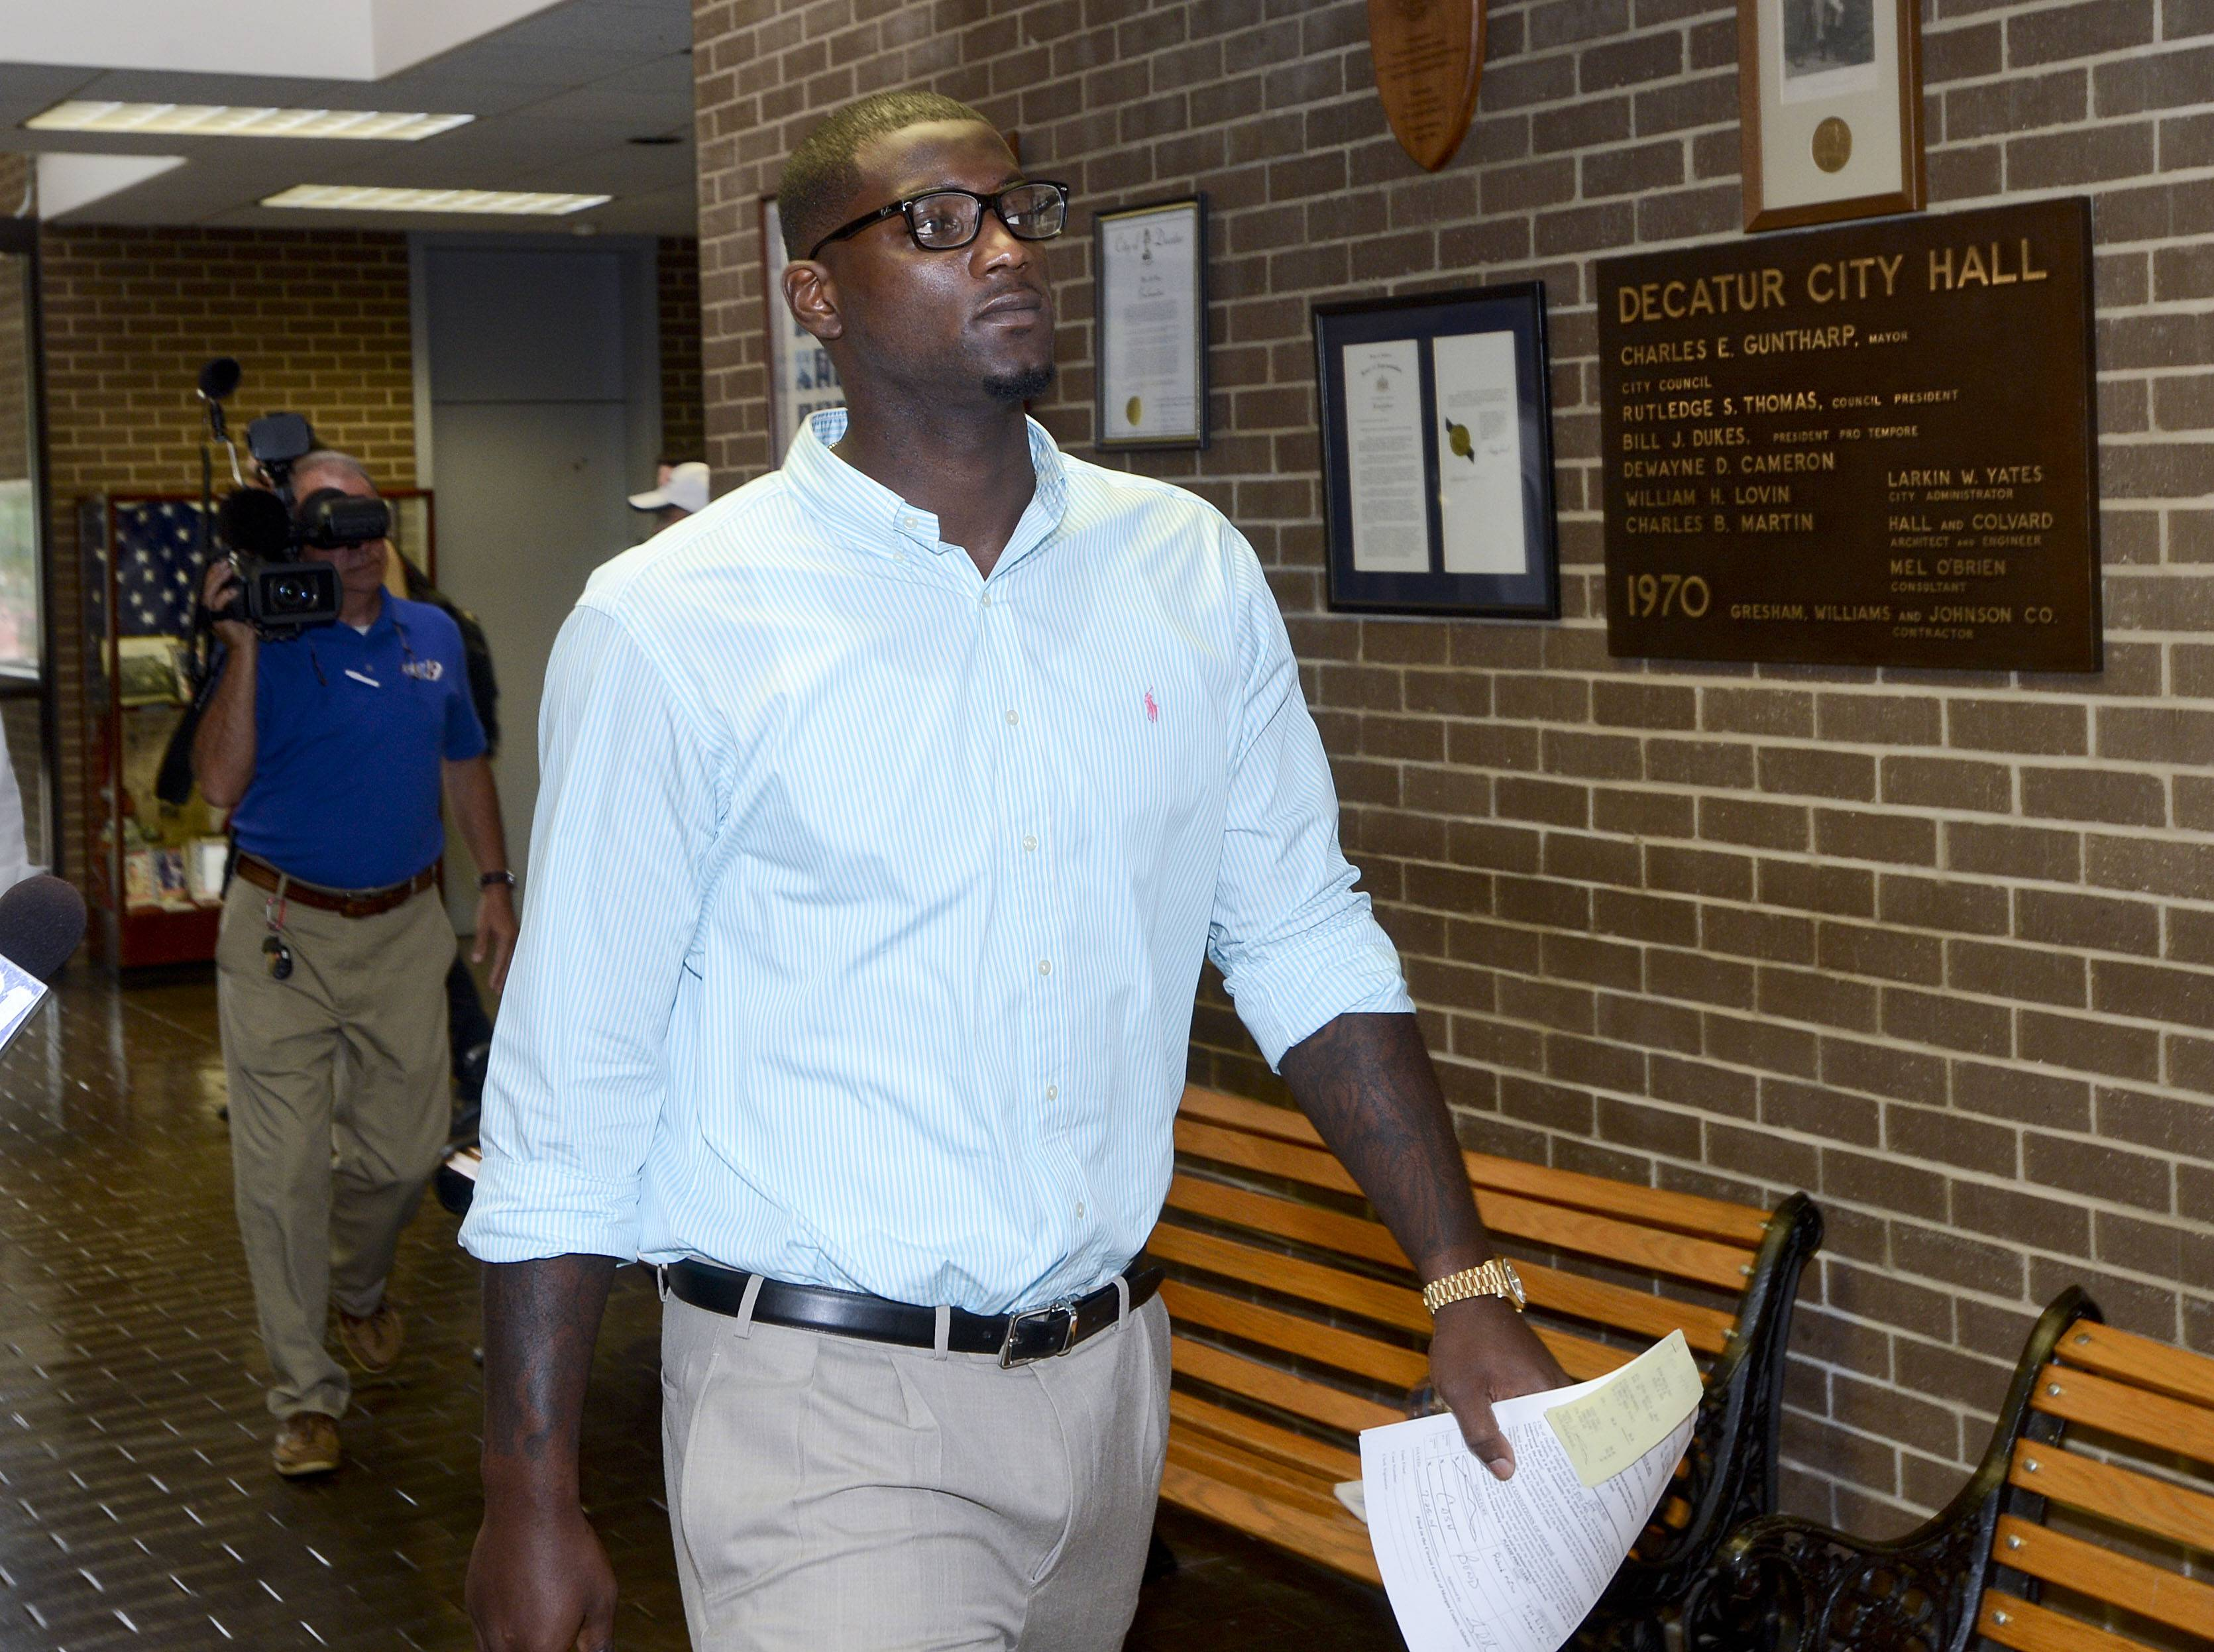 Dallas Cowboys linebacker Rolando McClain leaves court in Decatur, Ala., Friday, July 25, 2014. McClain was convicted of resisting arrest and disorderly conduct..